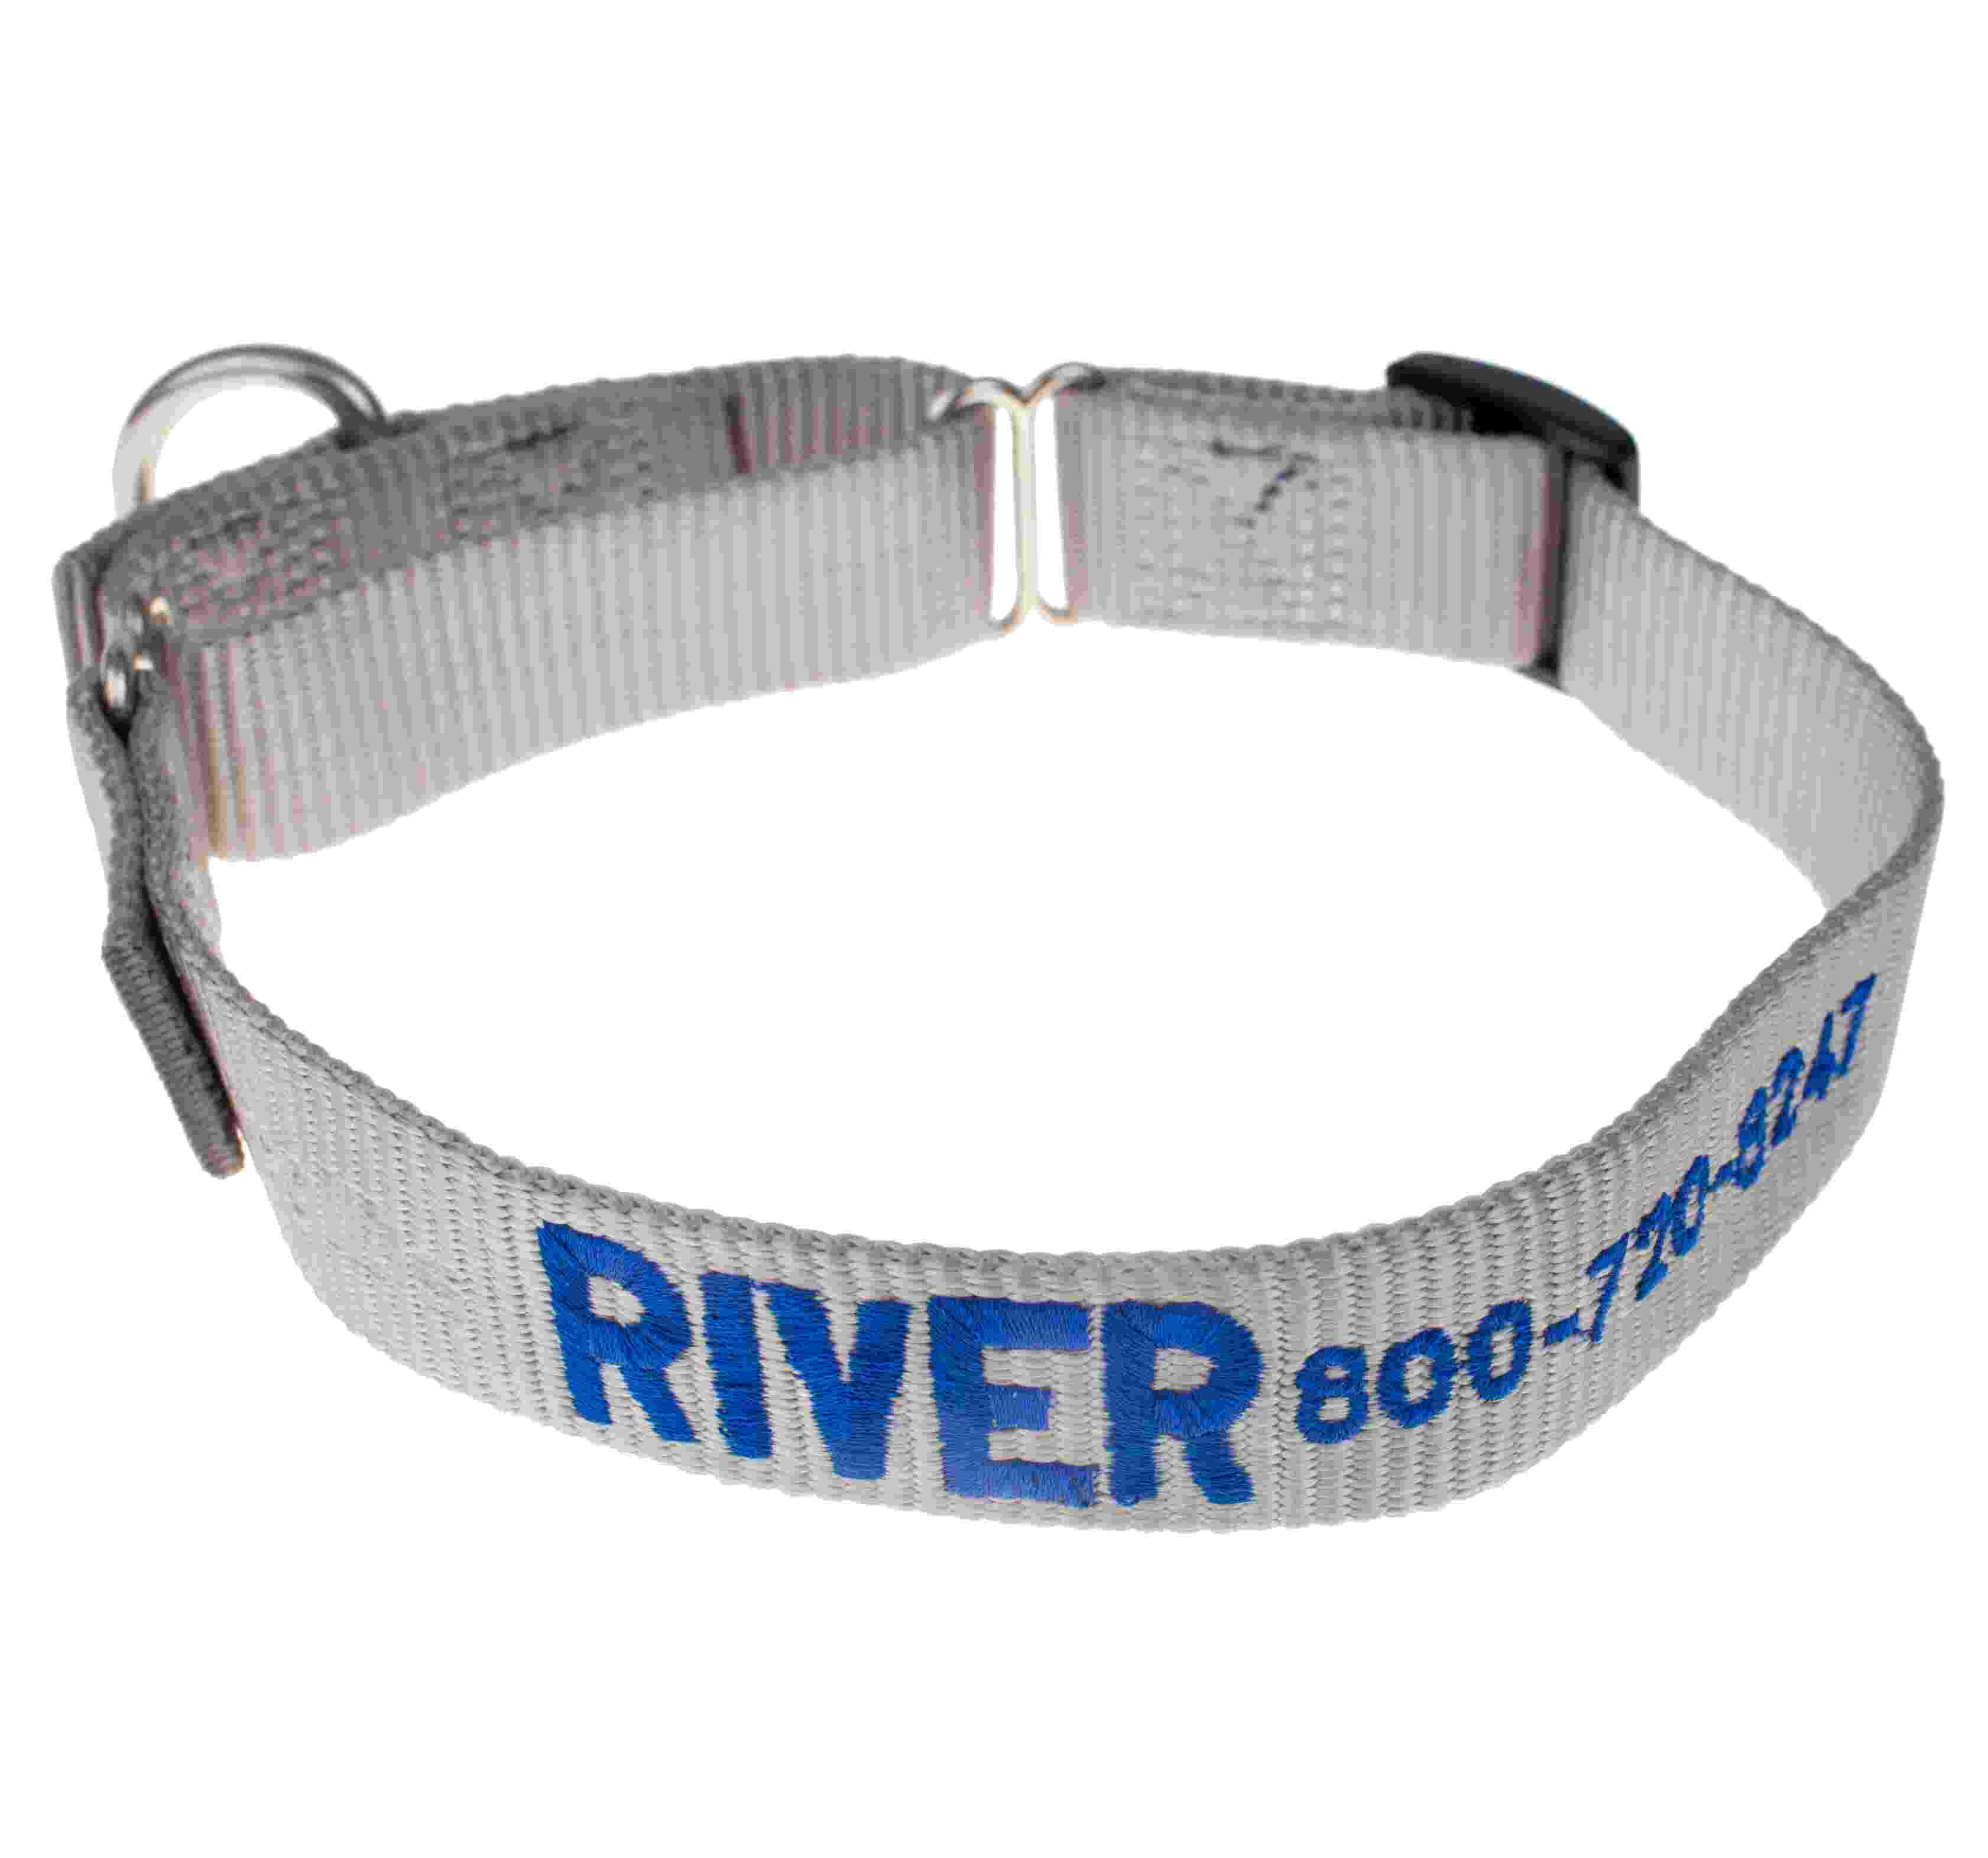 Embroidered Martingale Nylon Dog Collars